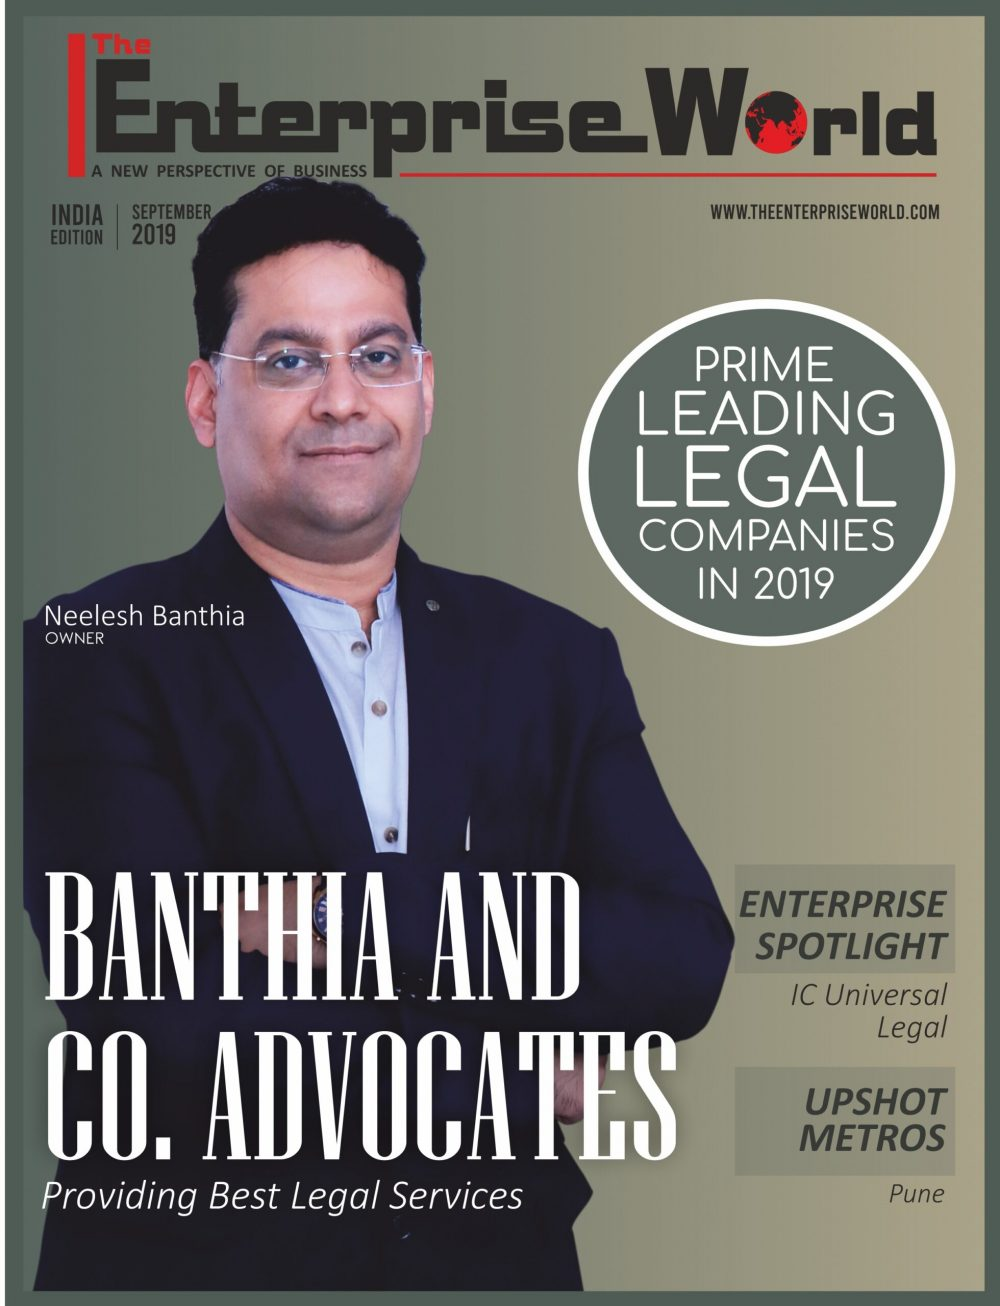 Prime Leading Legal Companies in 2019